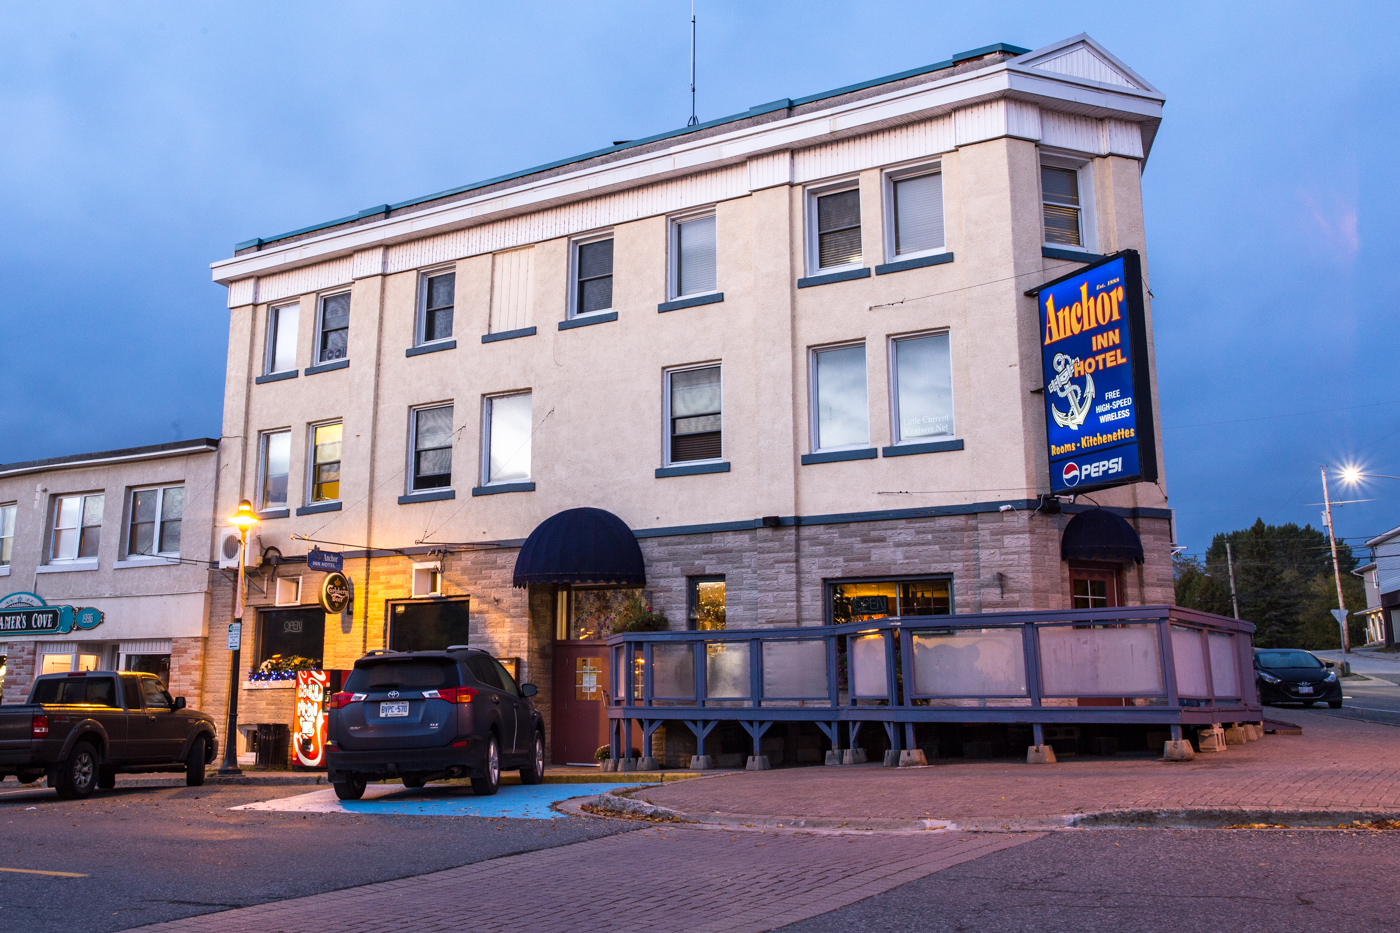 The Anchor Inn Hotel: From Prohibition to Present